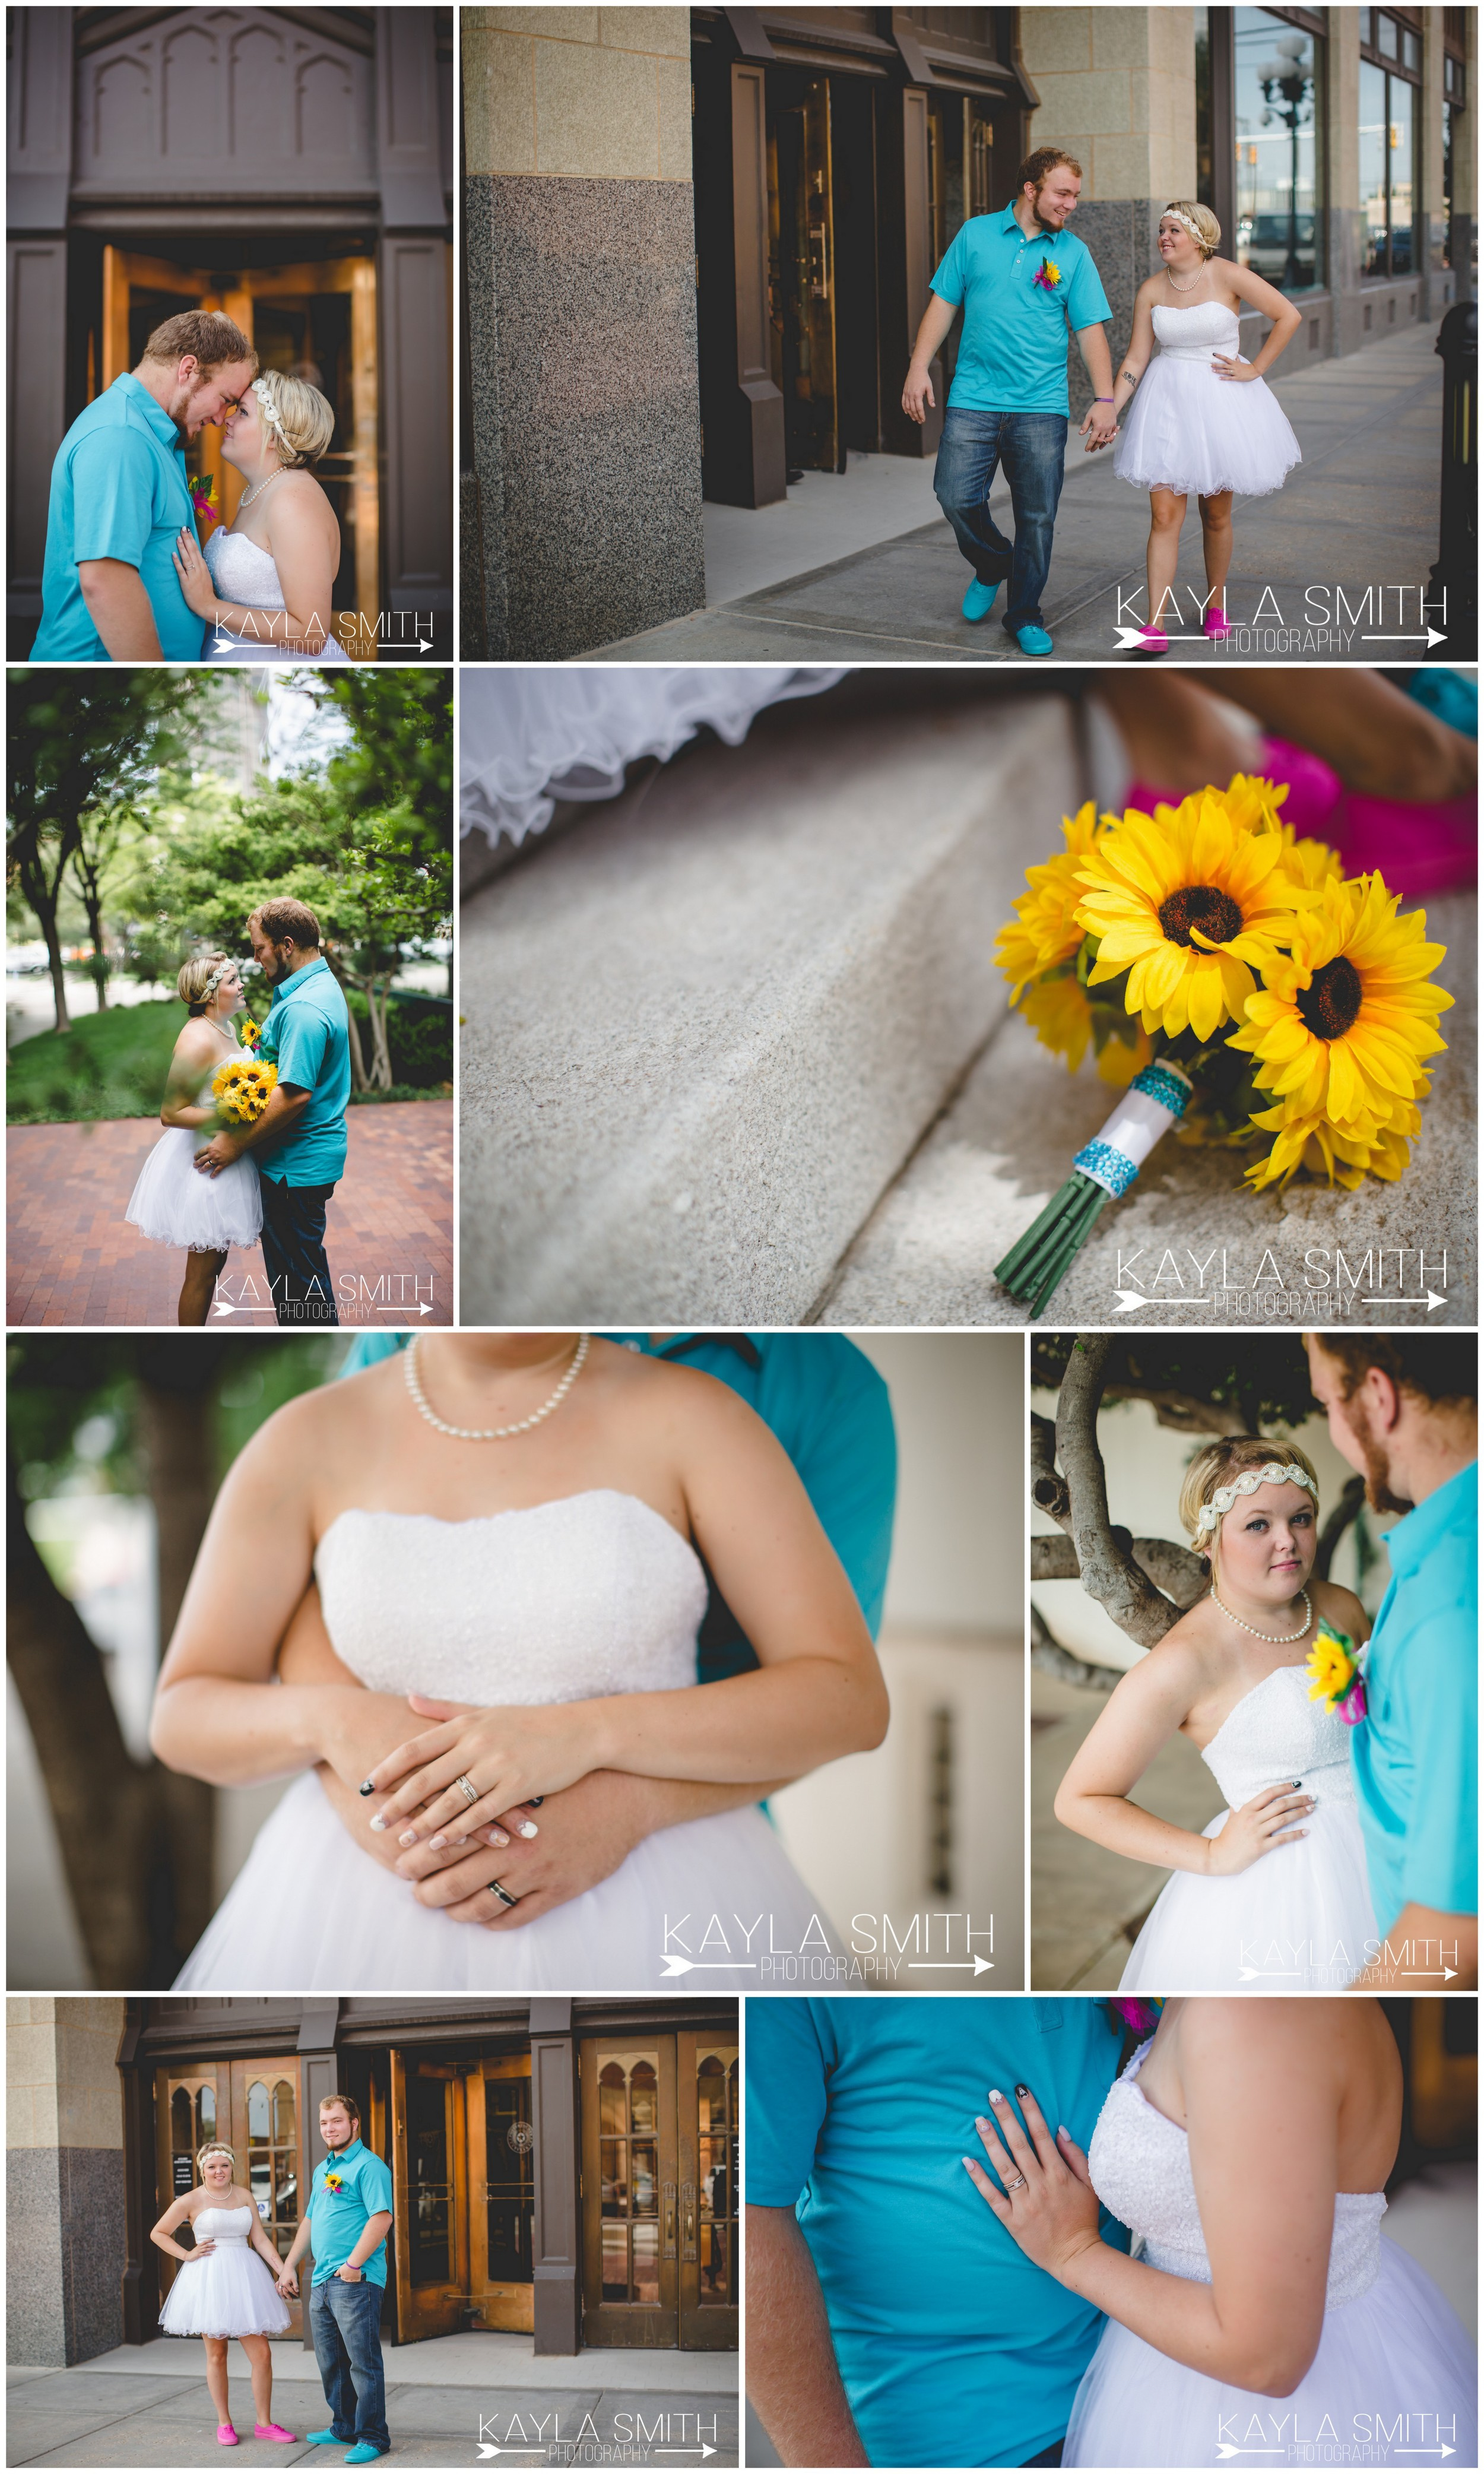 Then we took to the streets of downtown Amarillo for a post-vow photo session.